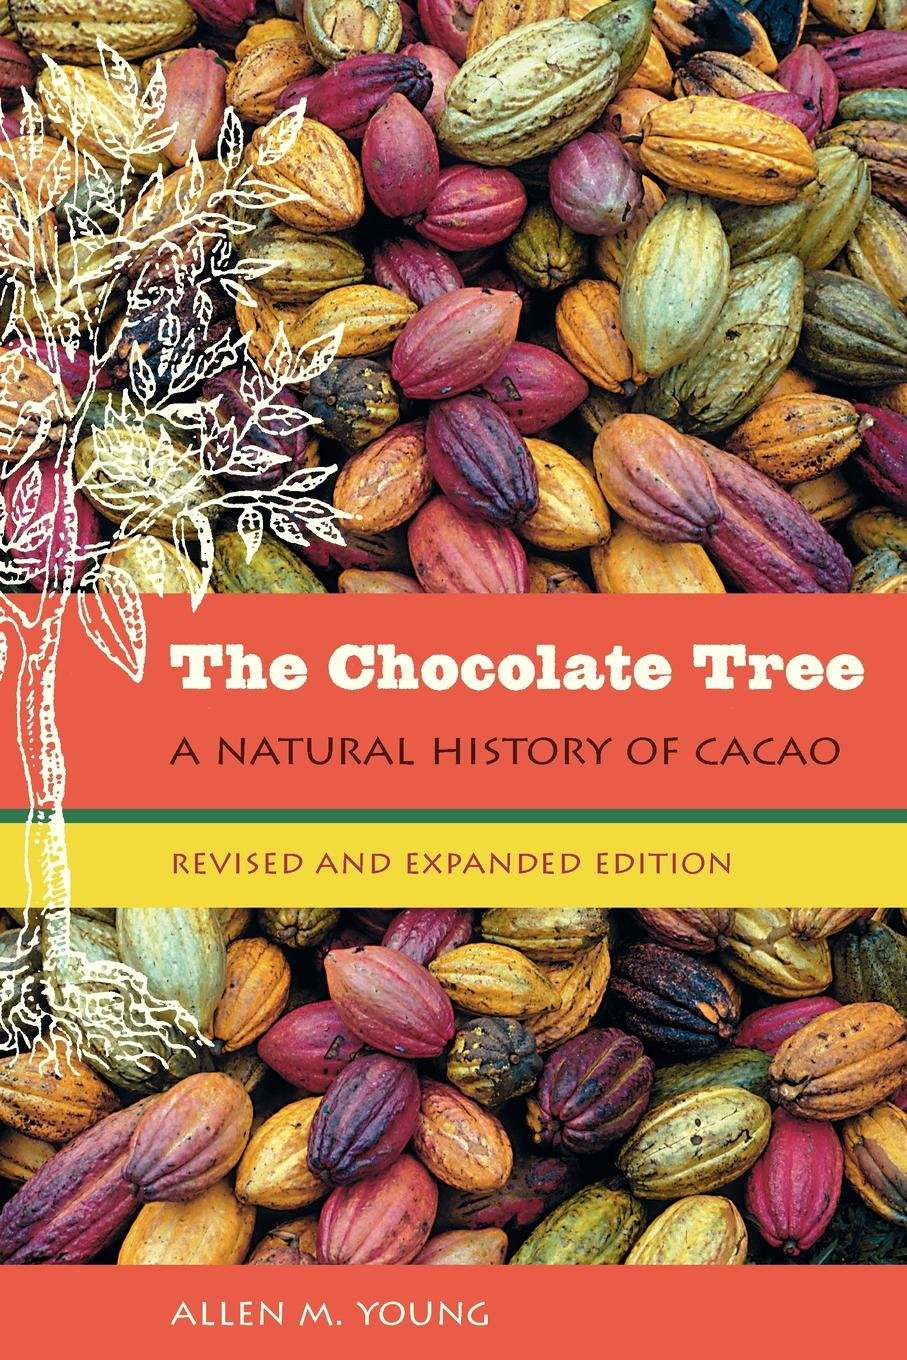 The Chocolate Tree: A Natural History of Cacao pdf